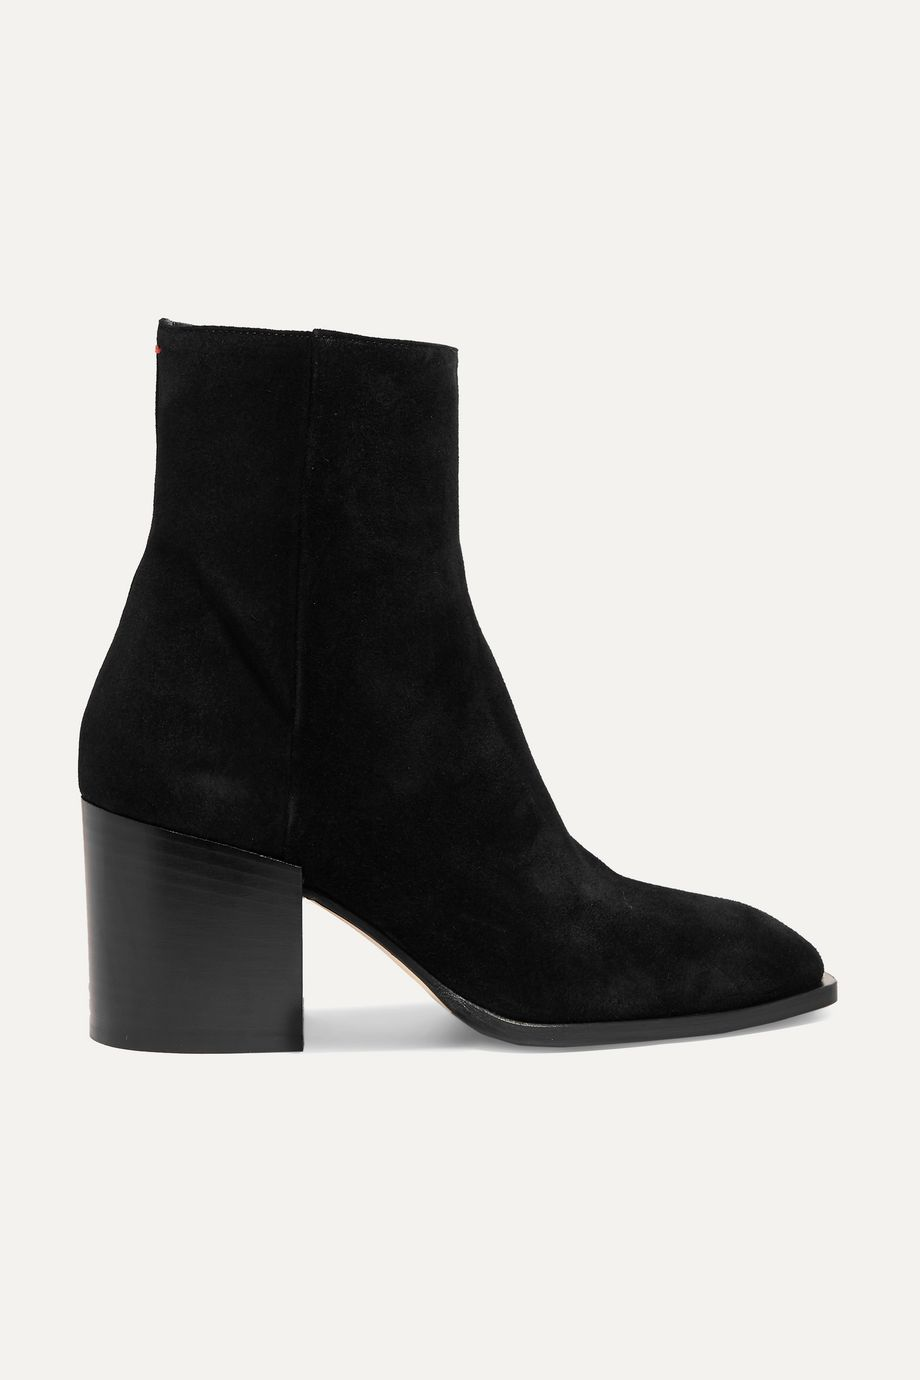 aeydē Leandra suede ankle boots